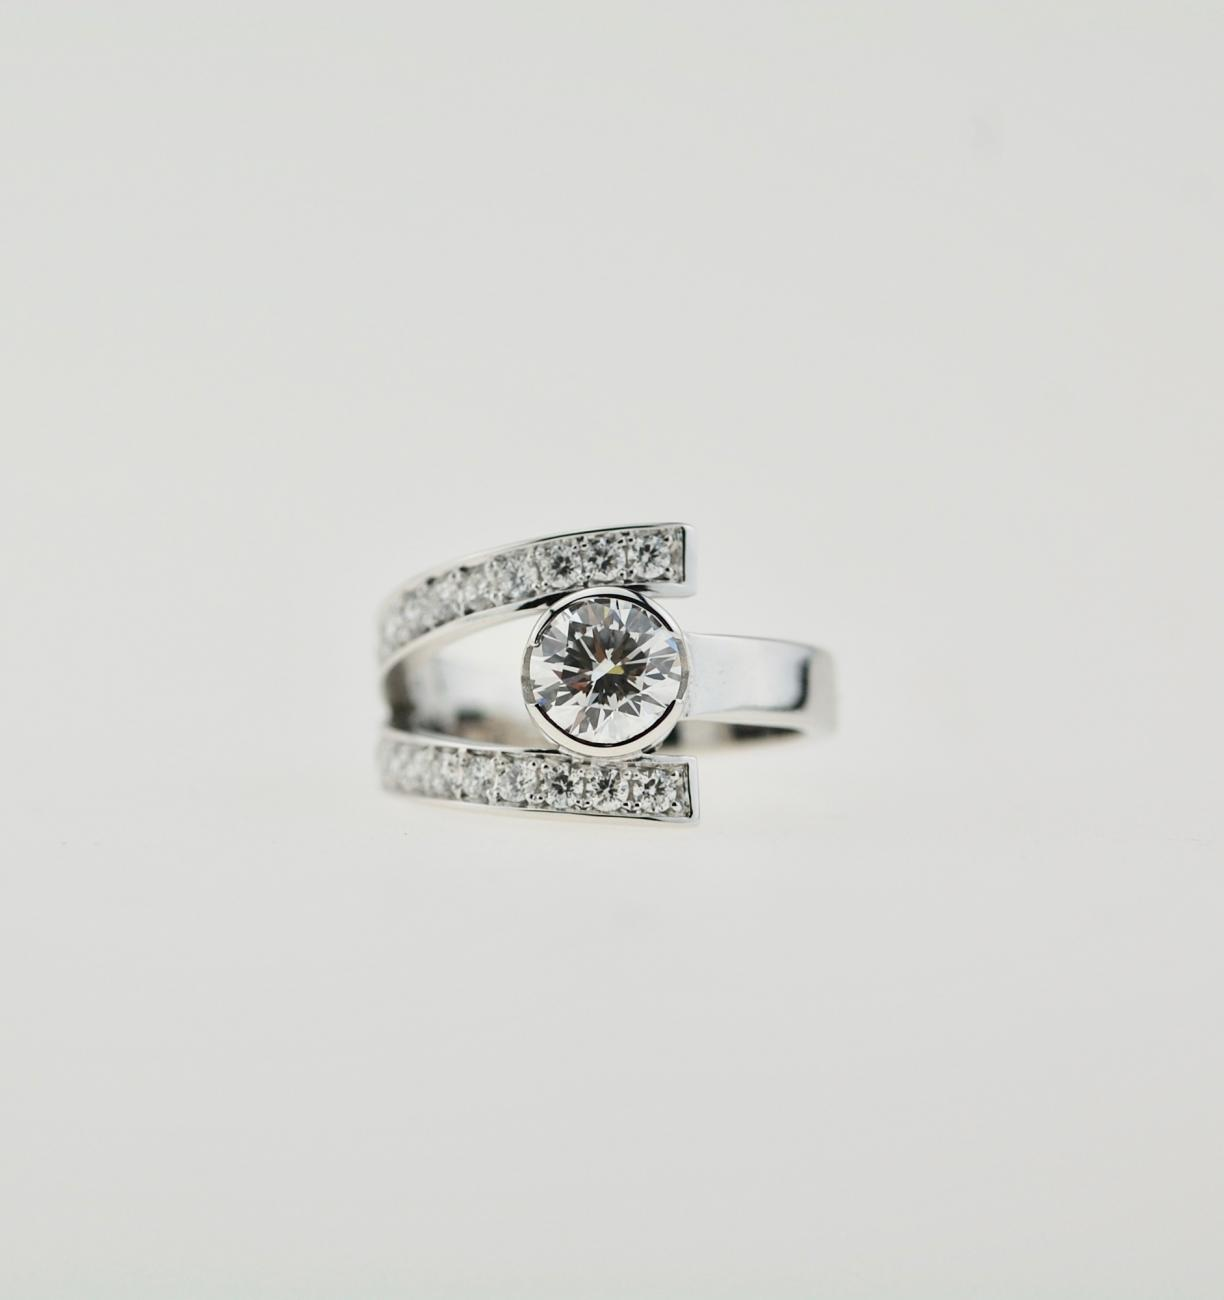 Ring wit goud met diamant